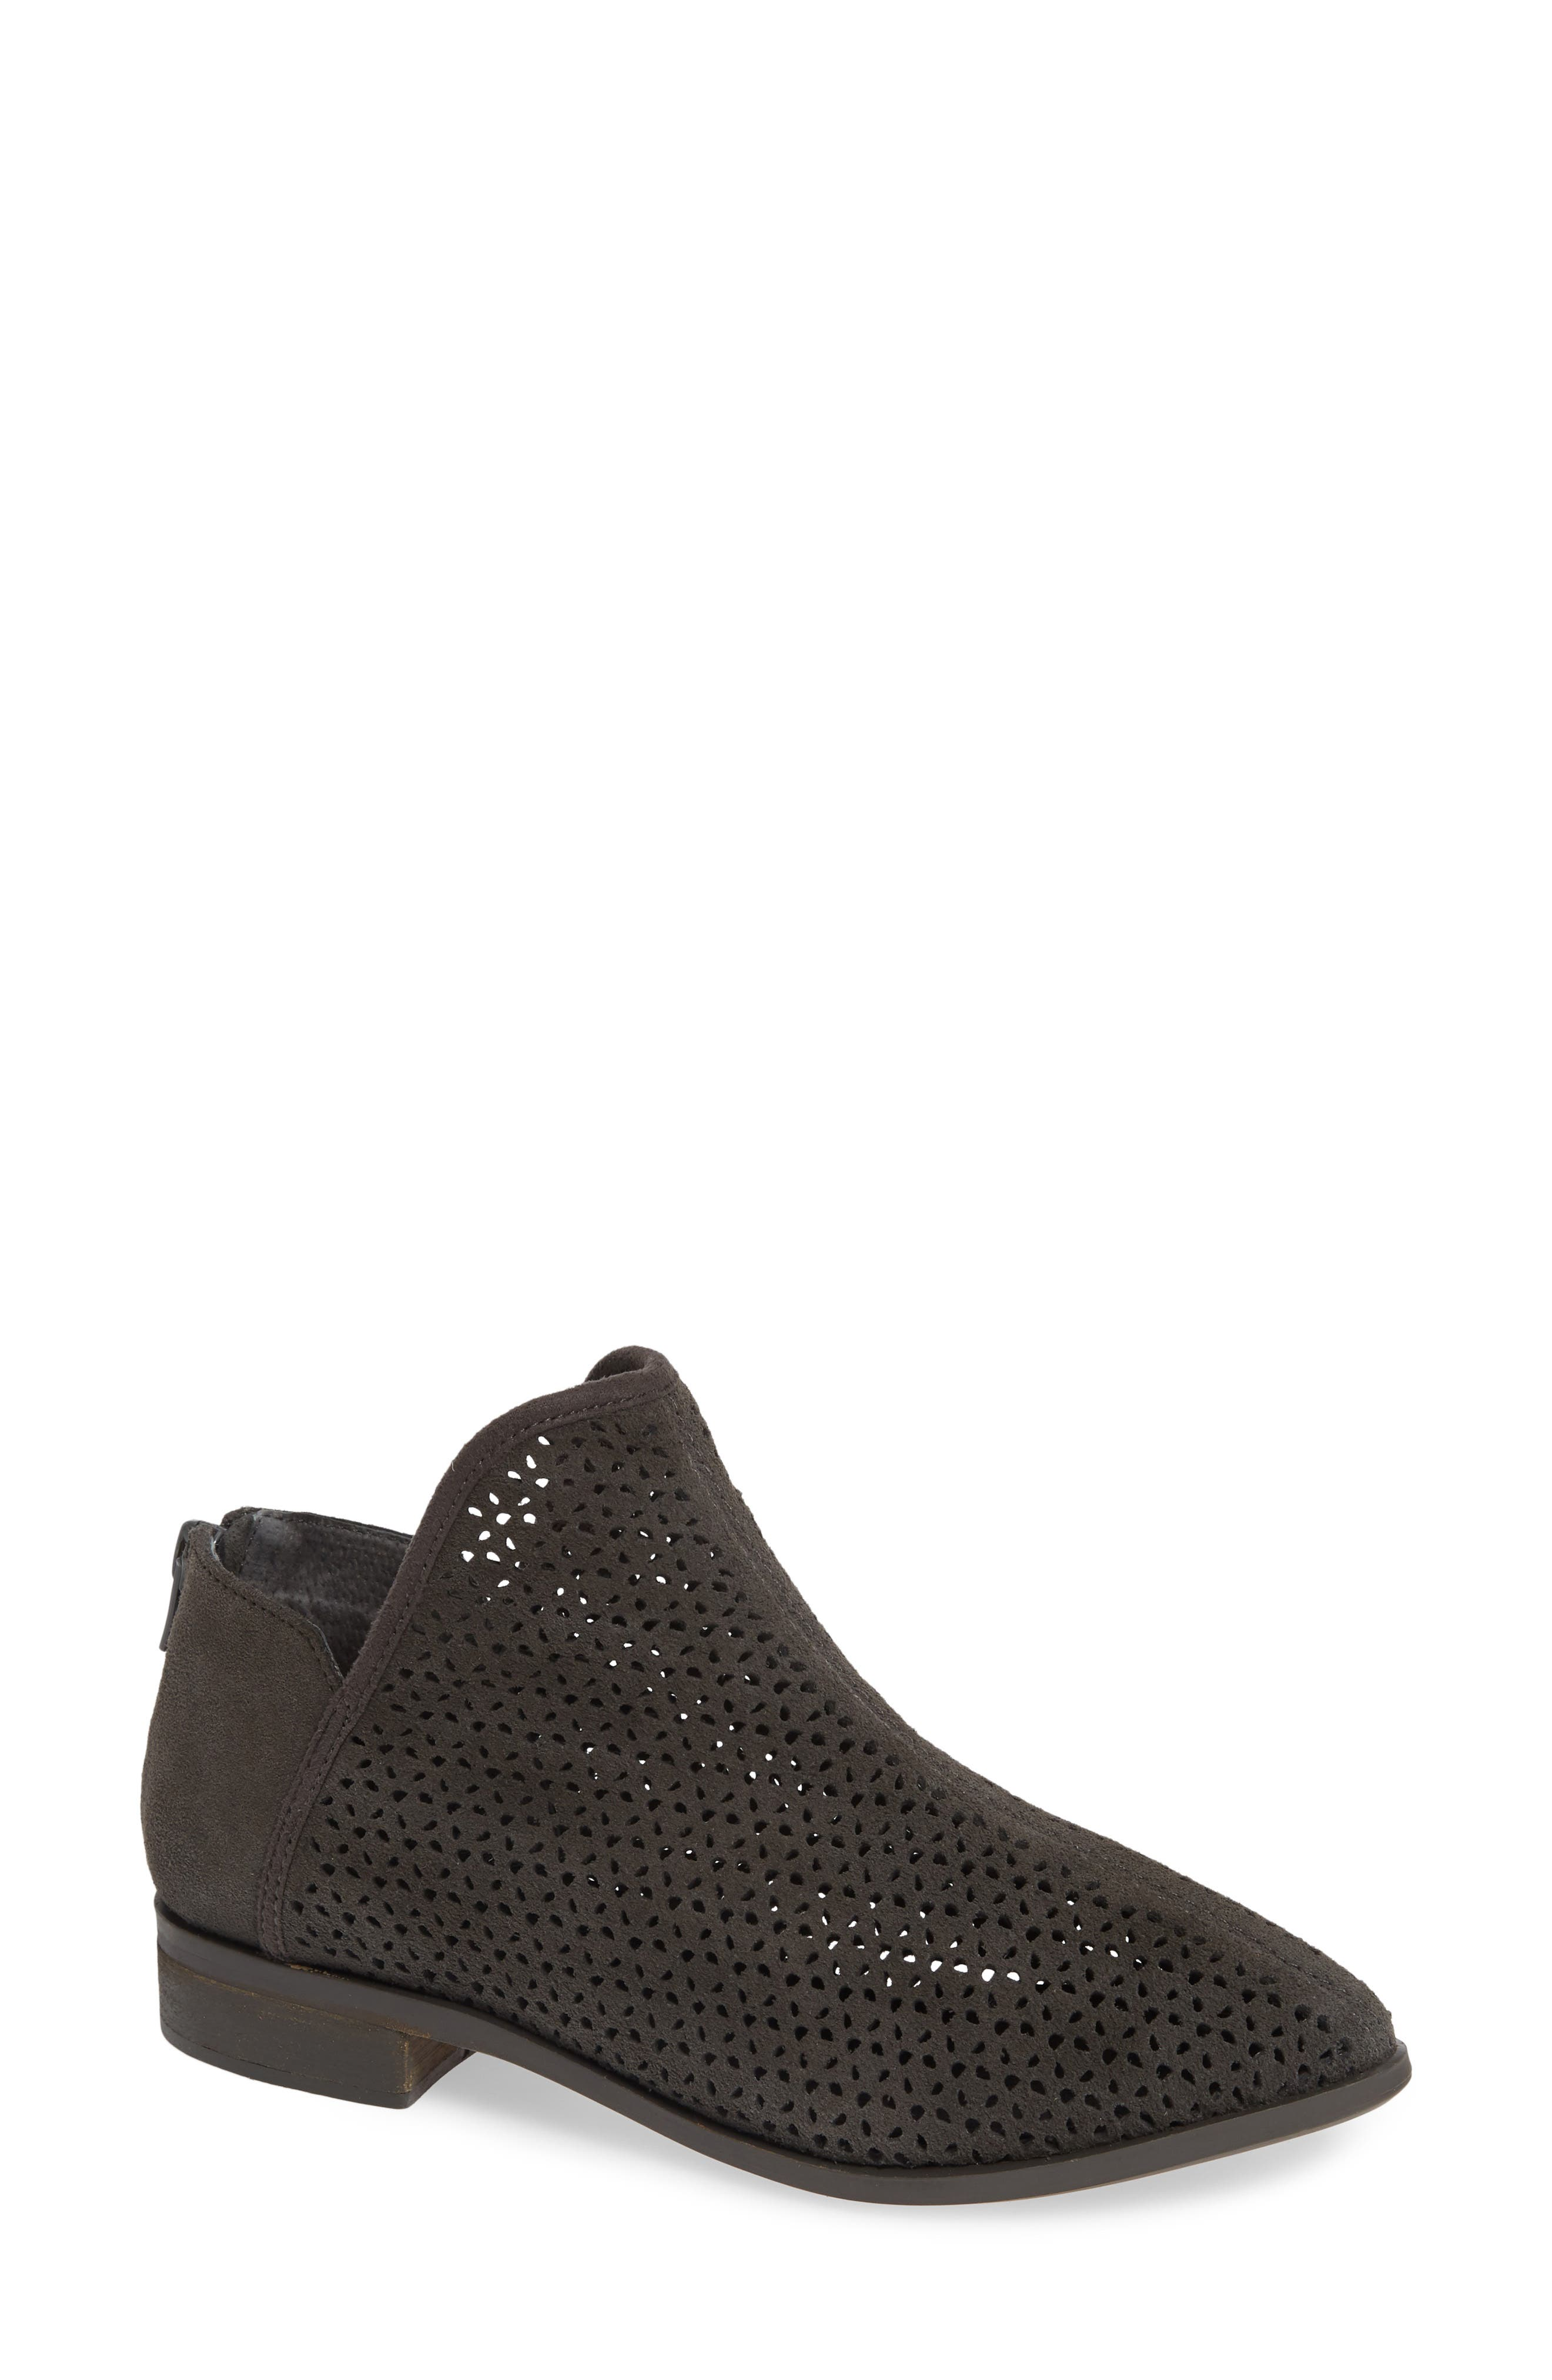 KELSI DAGGER BROOKLYN Alley Perforated Bootie, Main, color, CHARCOAL